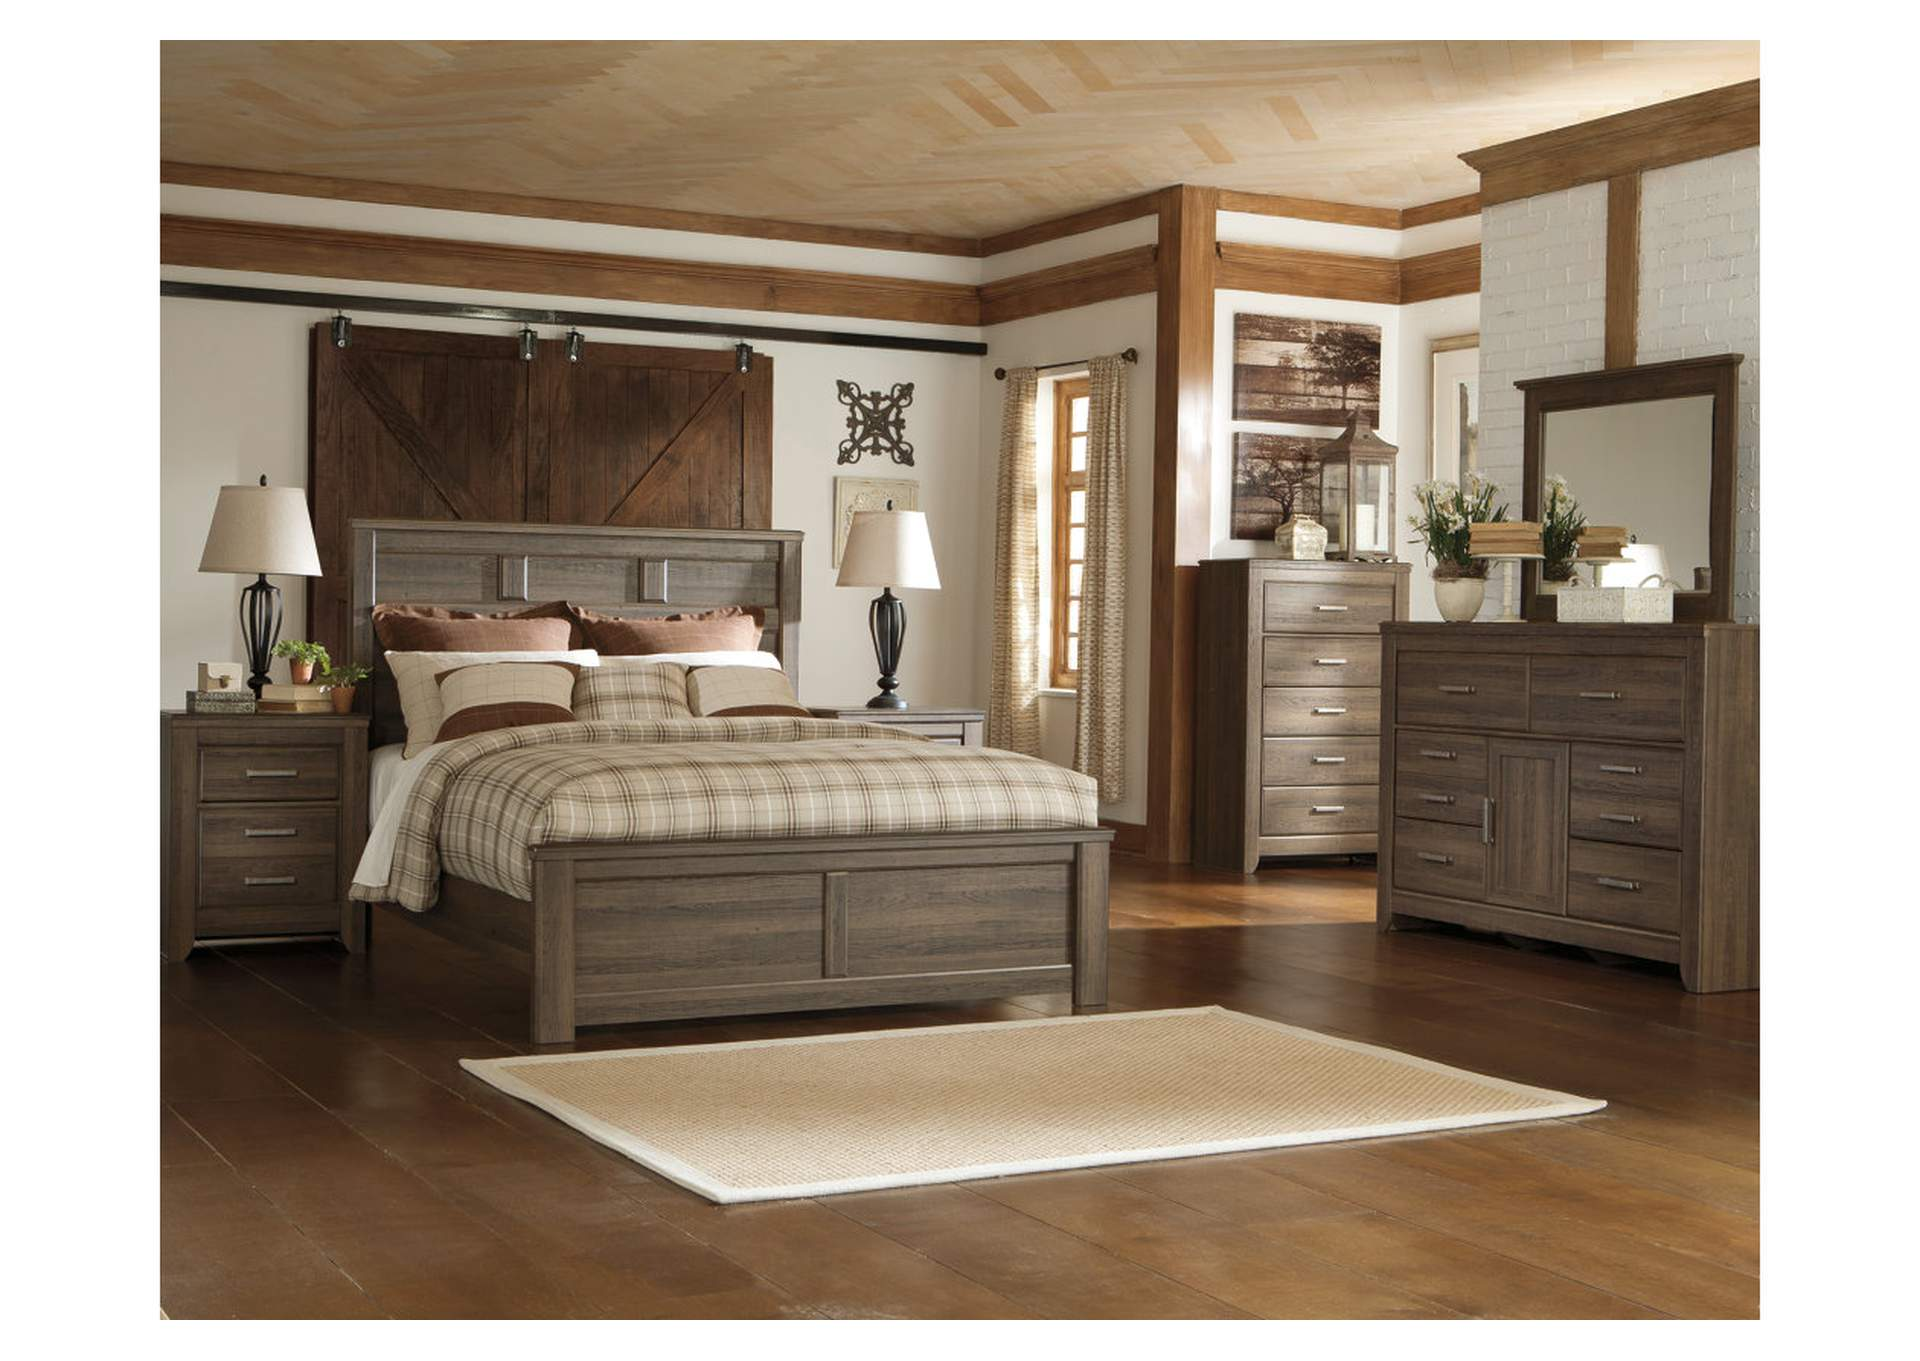 Juararo King Panel Bed w/Dresser, Mirror & Nightstand,Signature Design By Ashley